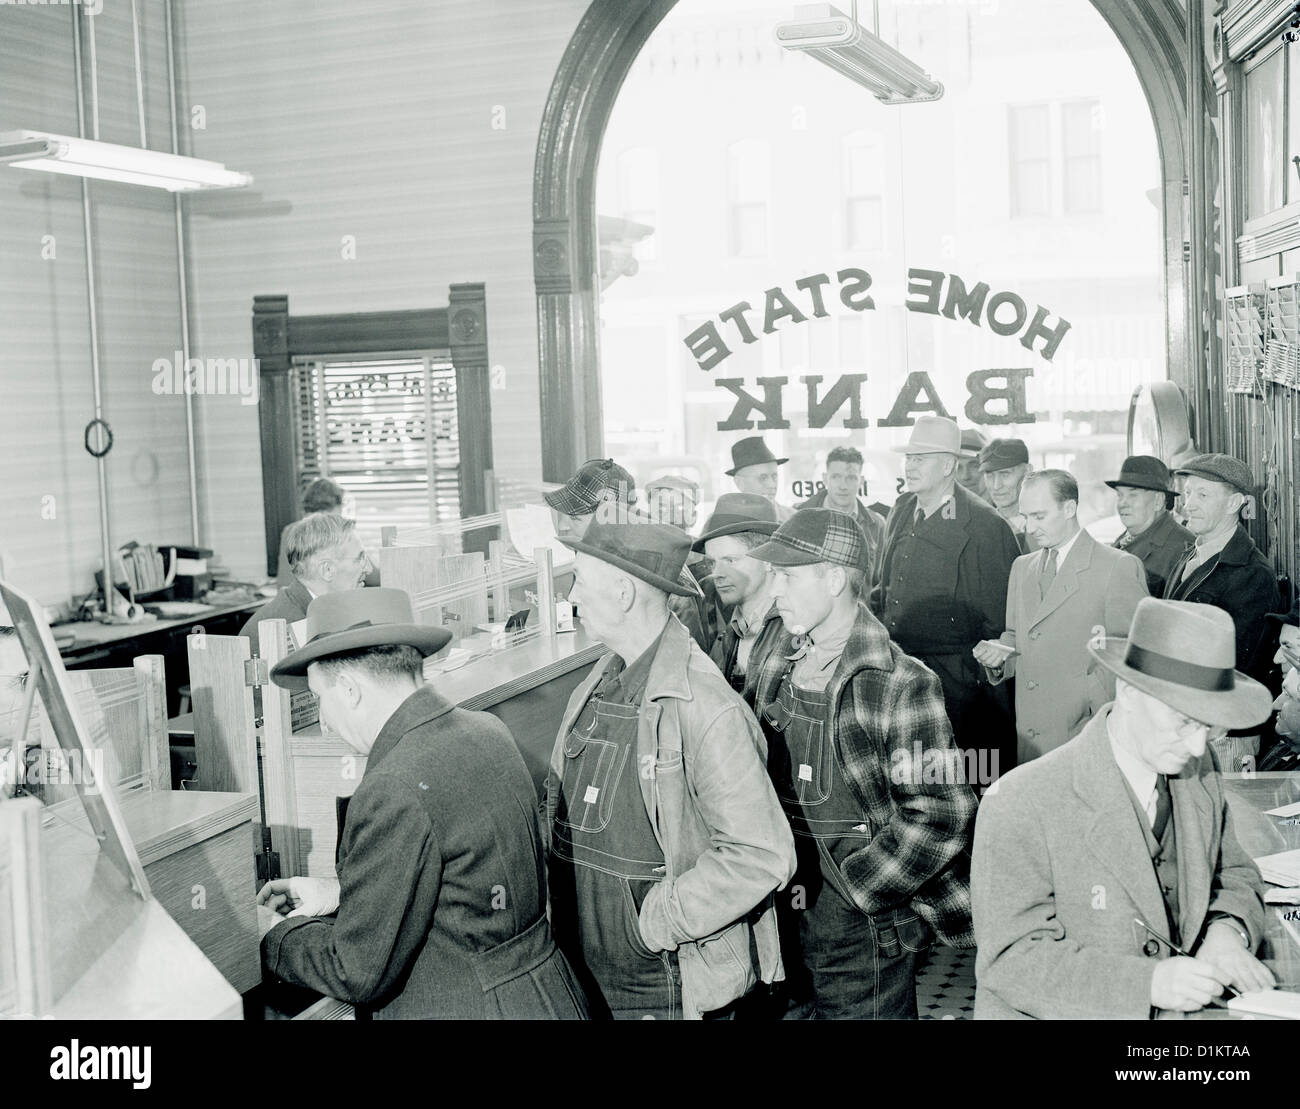 HISTORICAL PHOTO OF PEOPLE STANDING IN LINE AT THE BANK / 1930'S - Stock Image